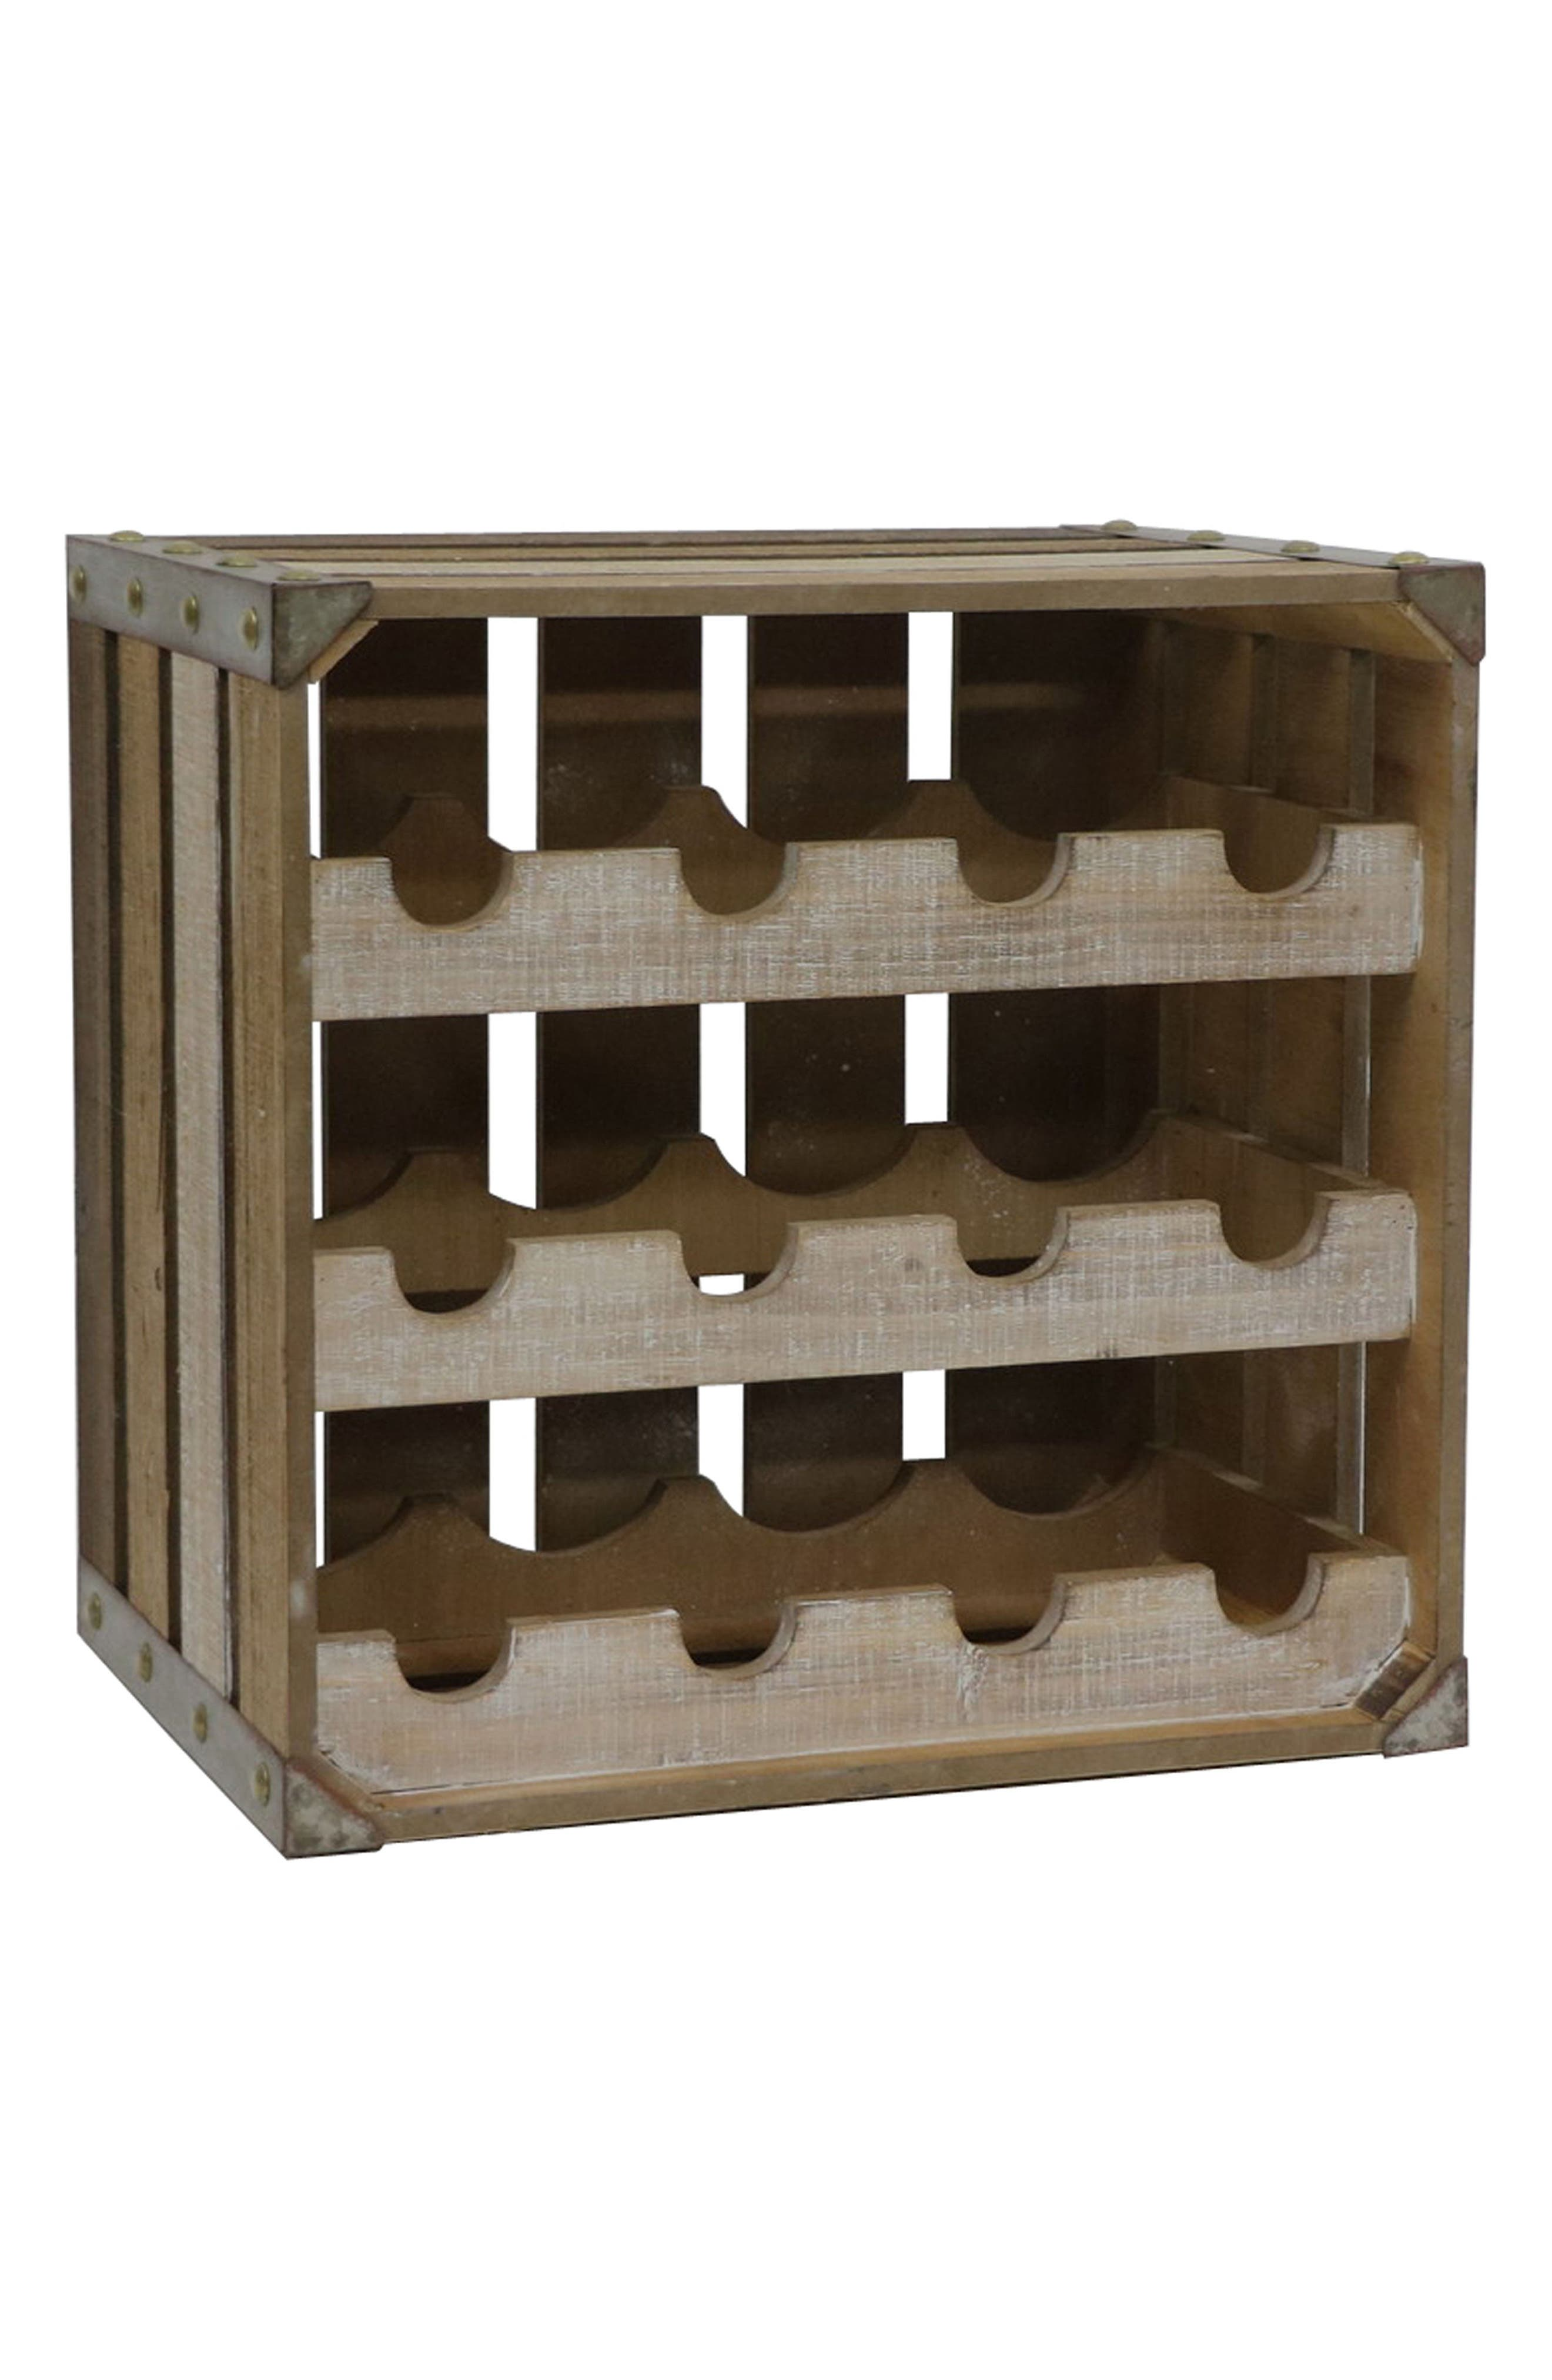 Wooden Wine Crate,                             Main thumbnail 1, color,                             200